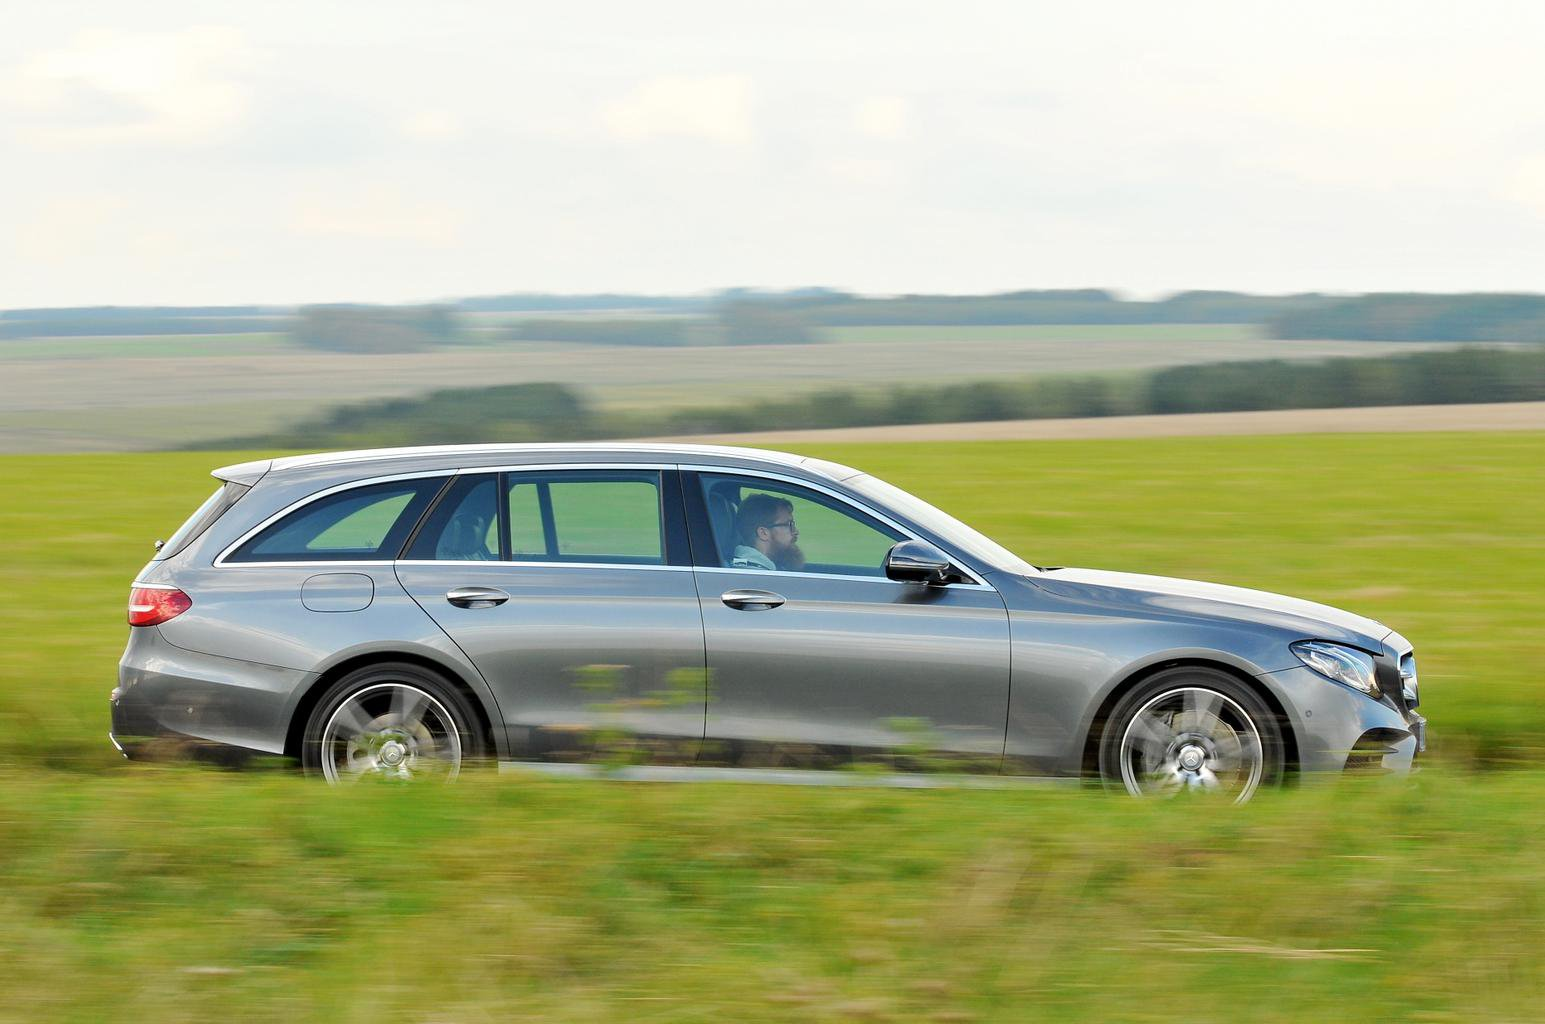 New Mercedes E-Class Estate and Volvo V90 vs Audi A6 Avant